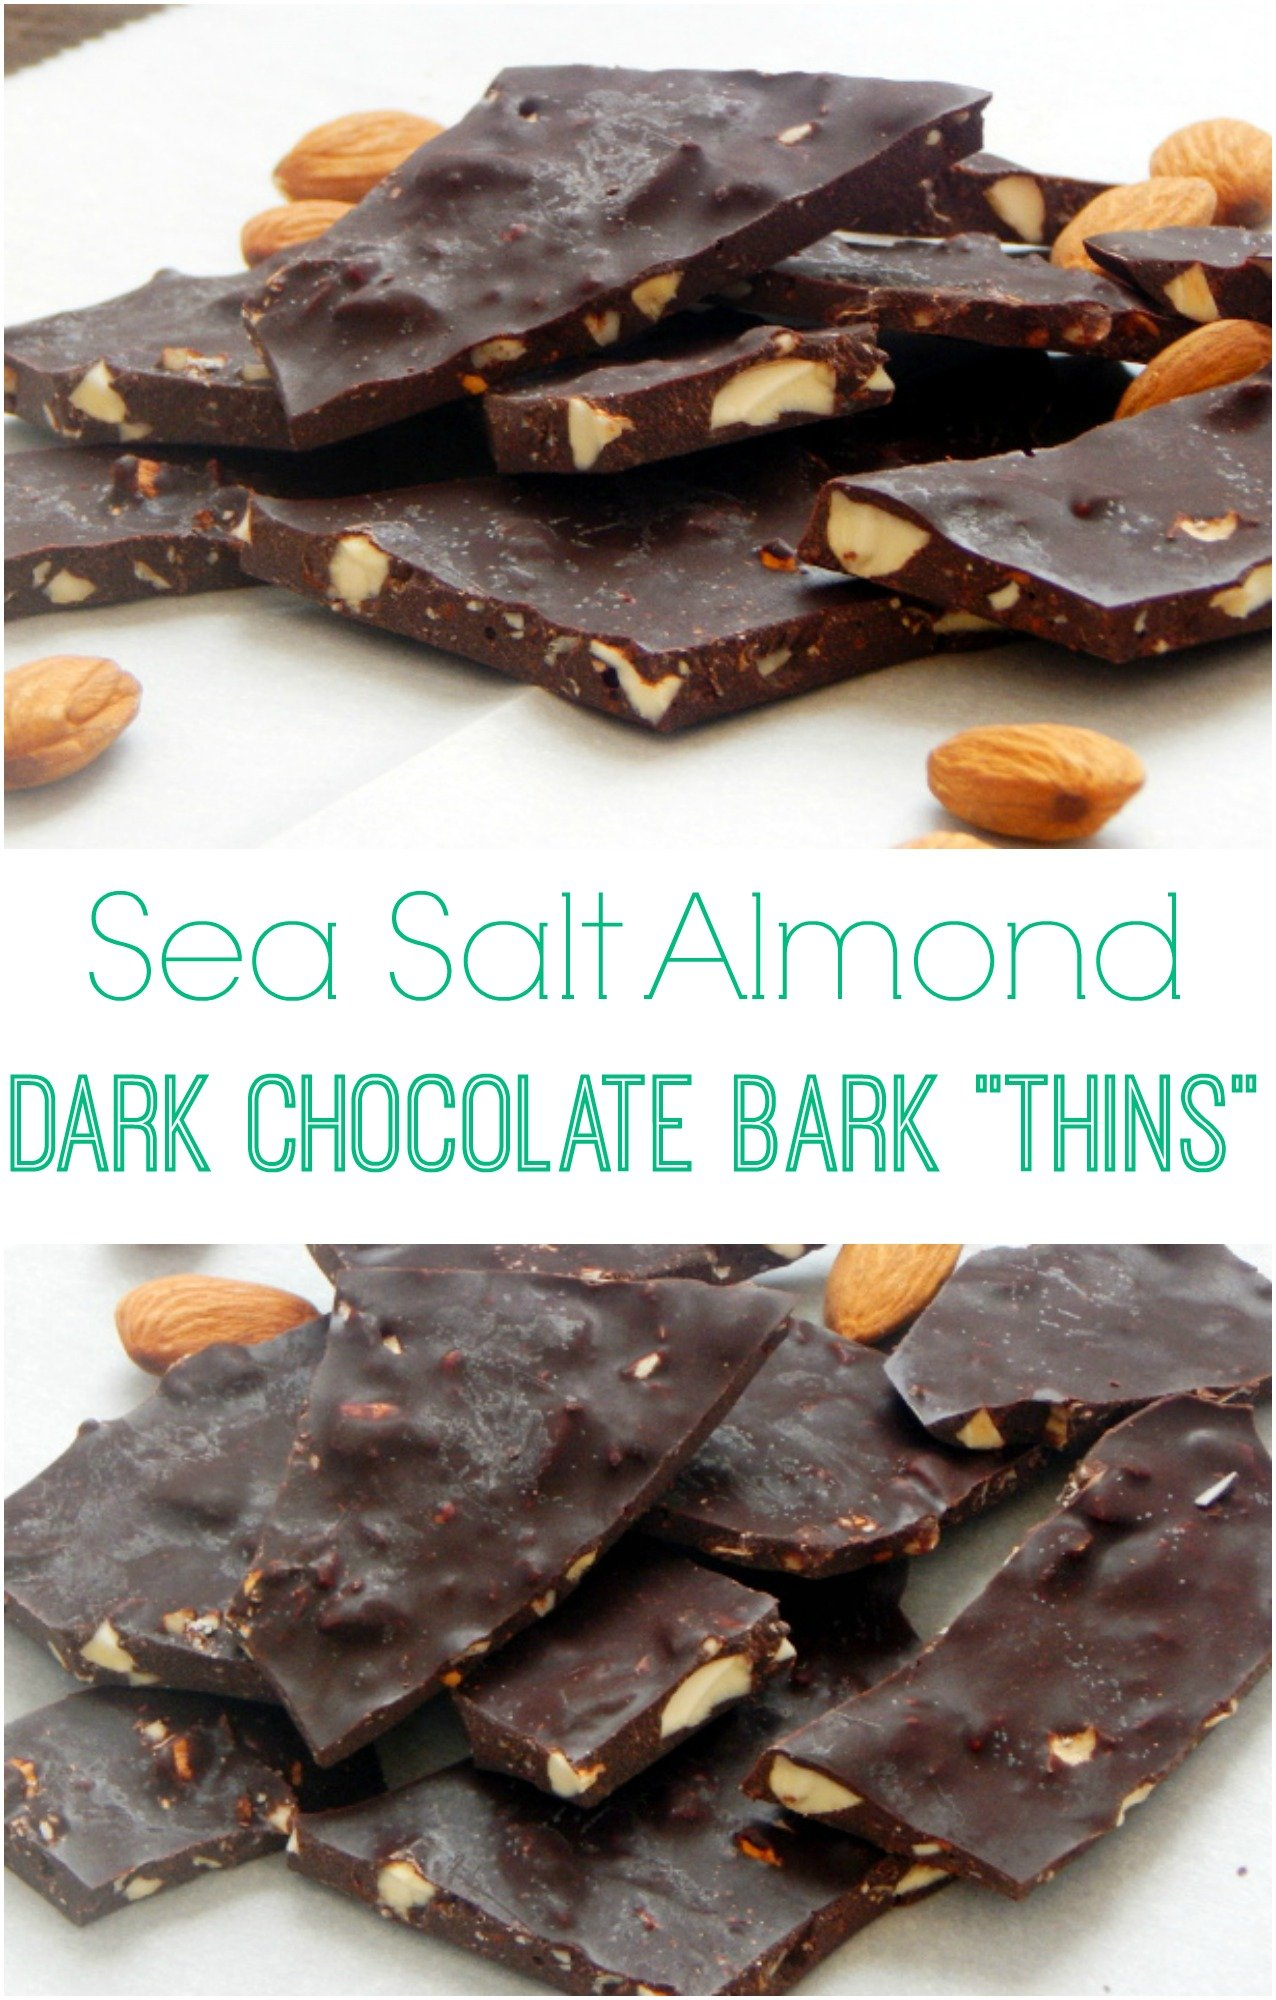 Sea Salt Almond Dark Chocolate Bark Thins